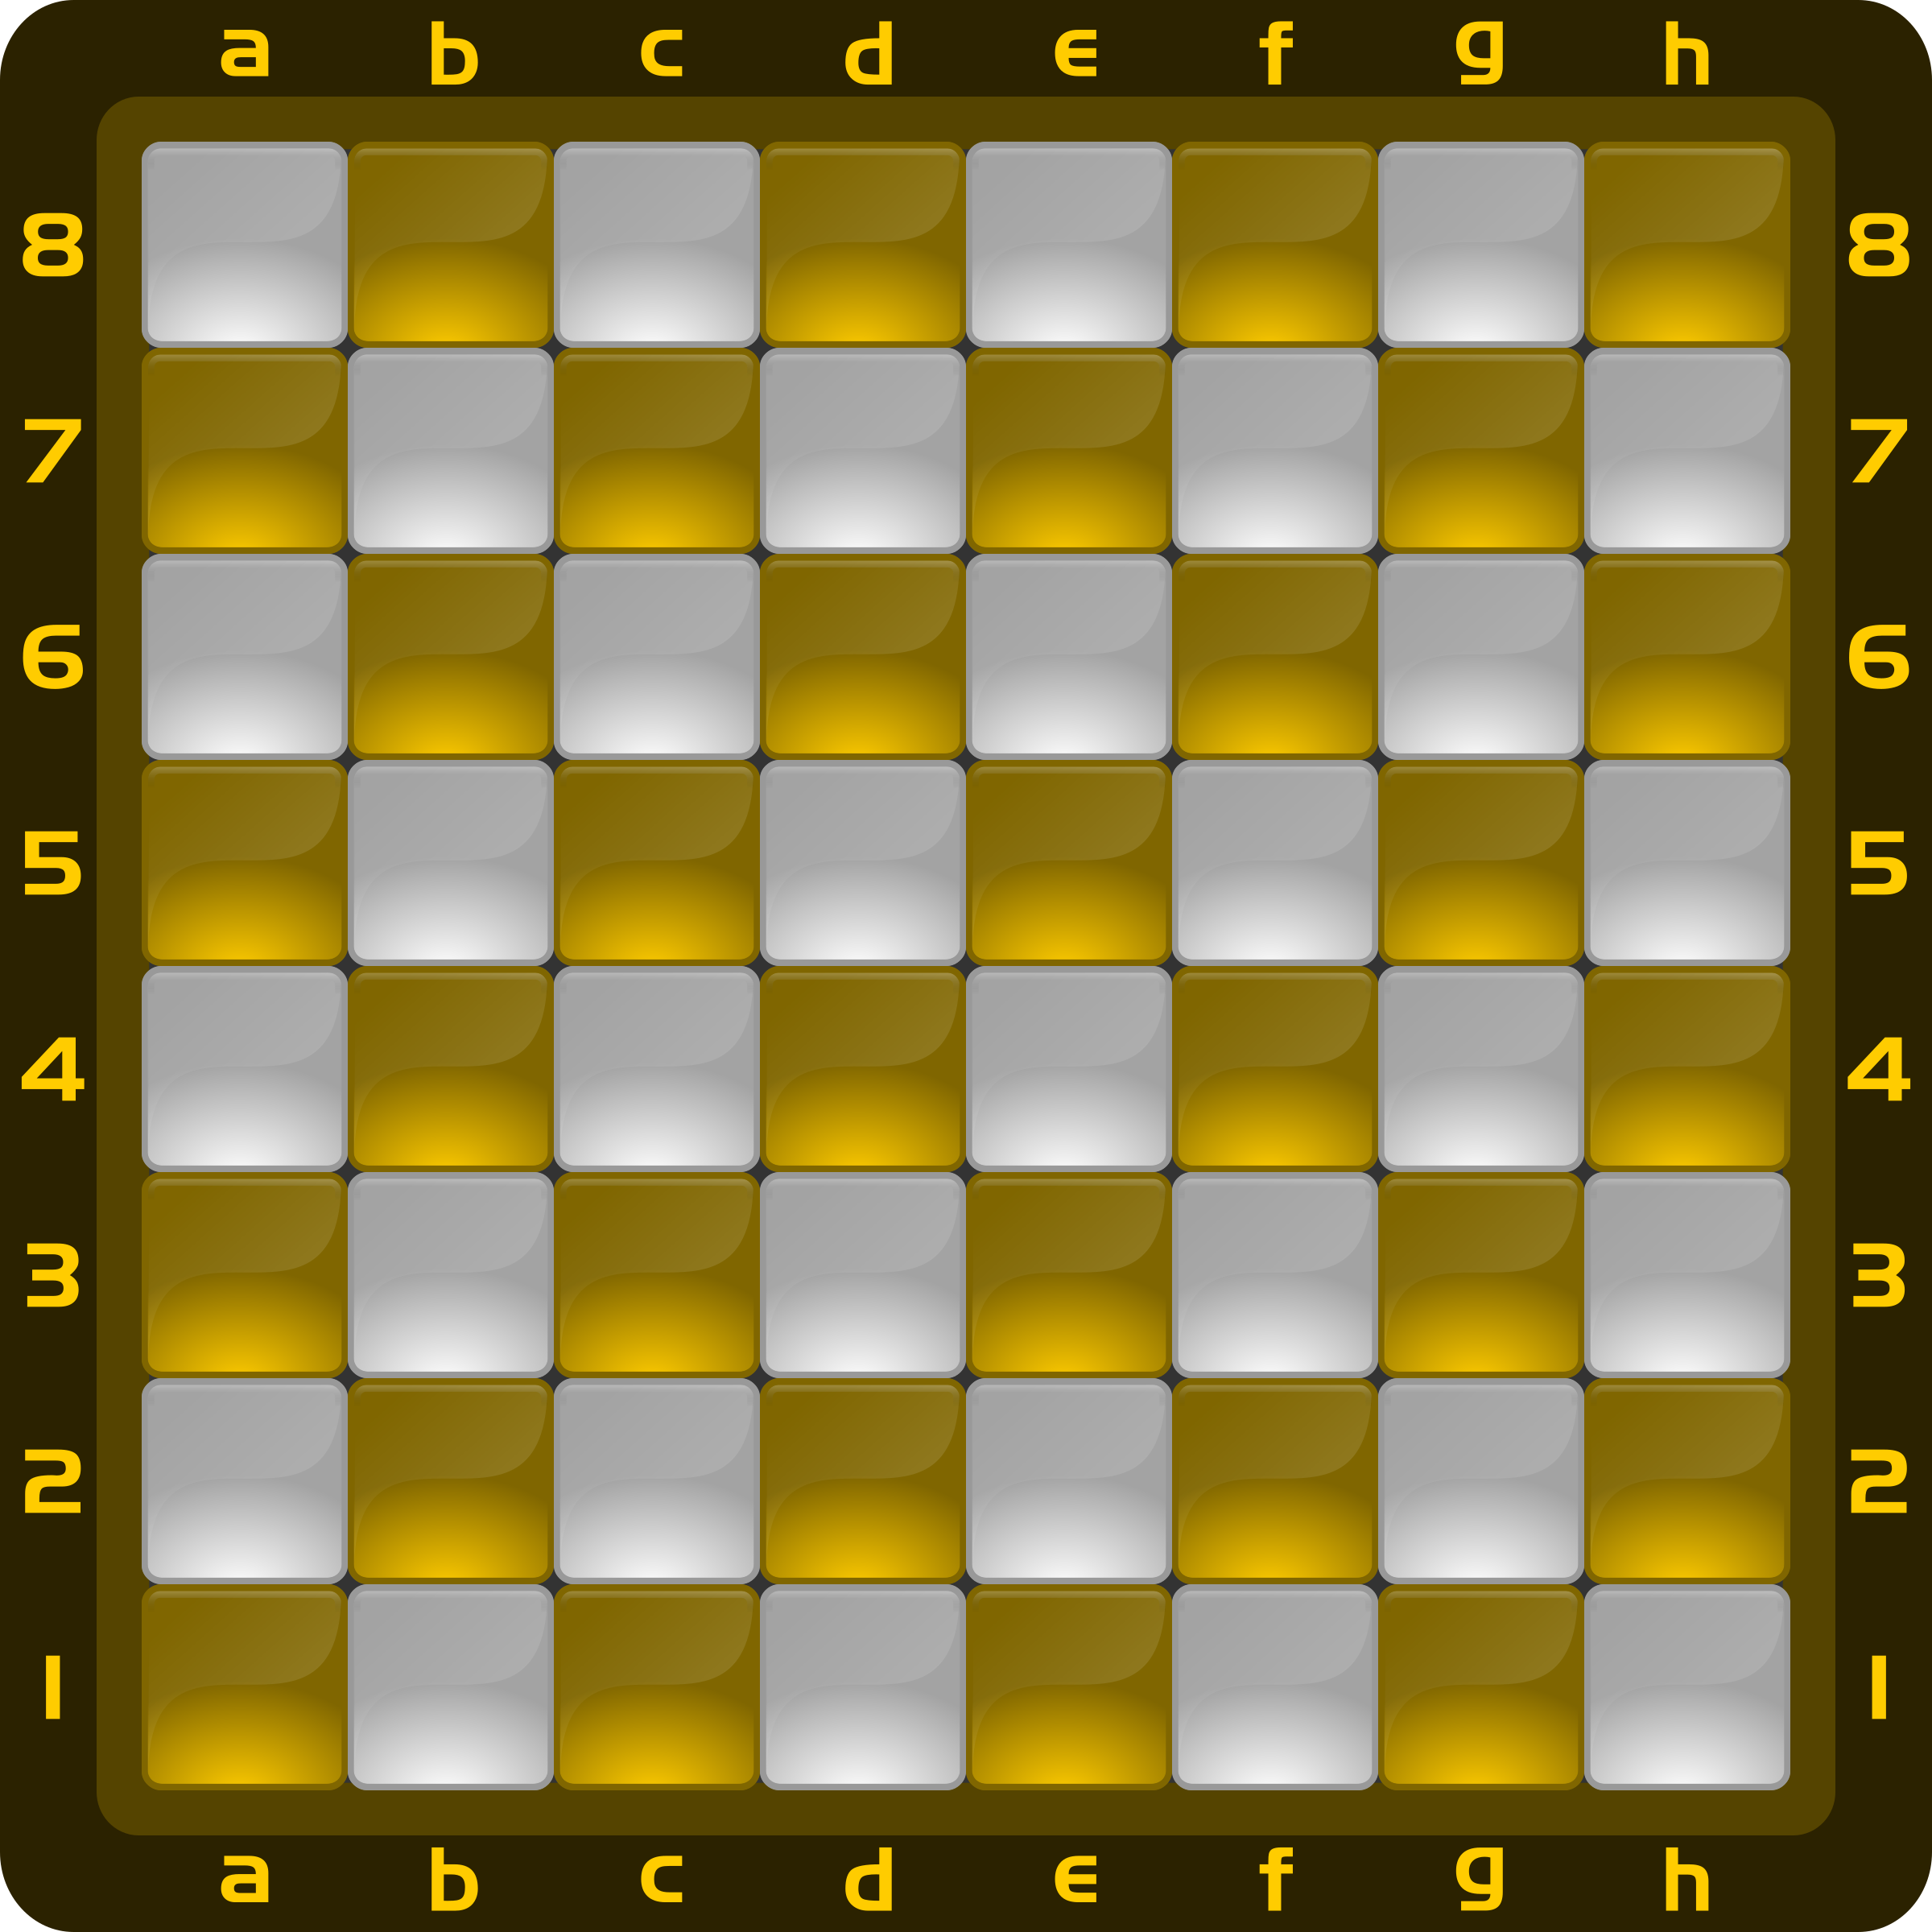 Chessboard Glossy Squares - Honey by DG-RA